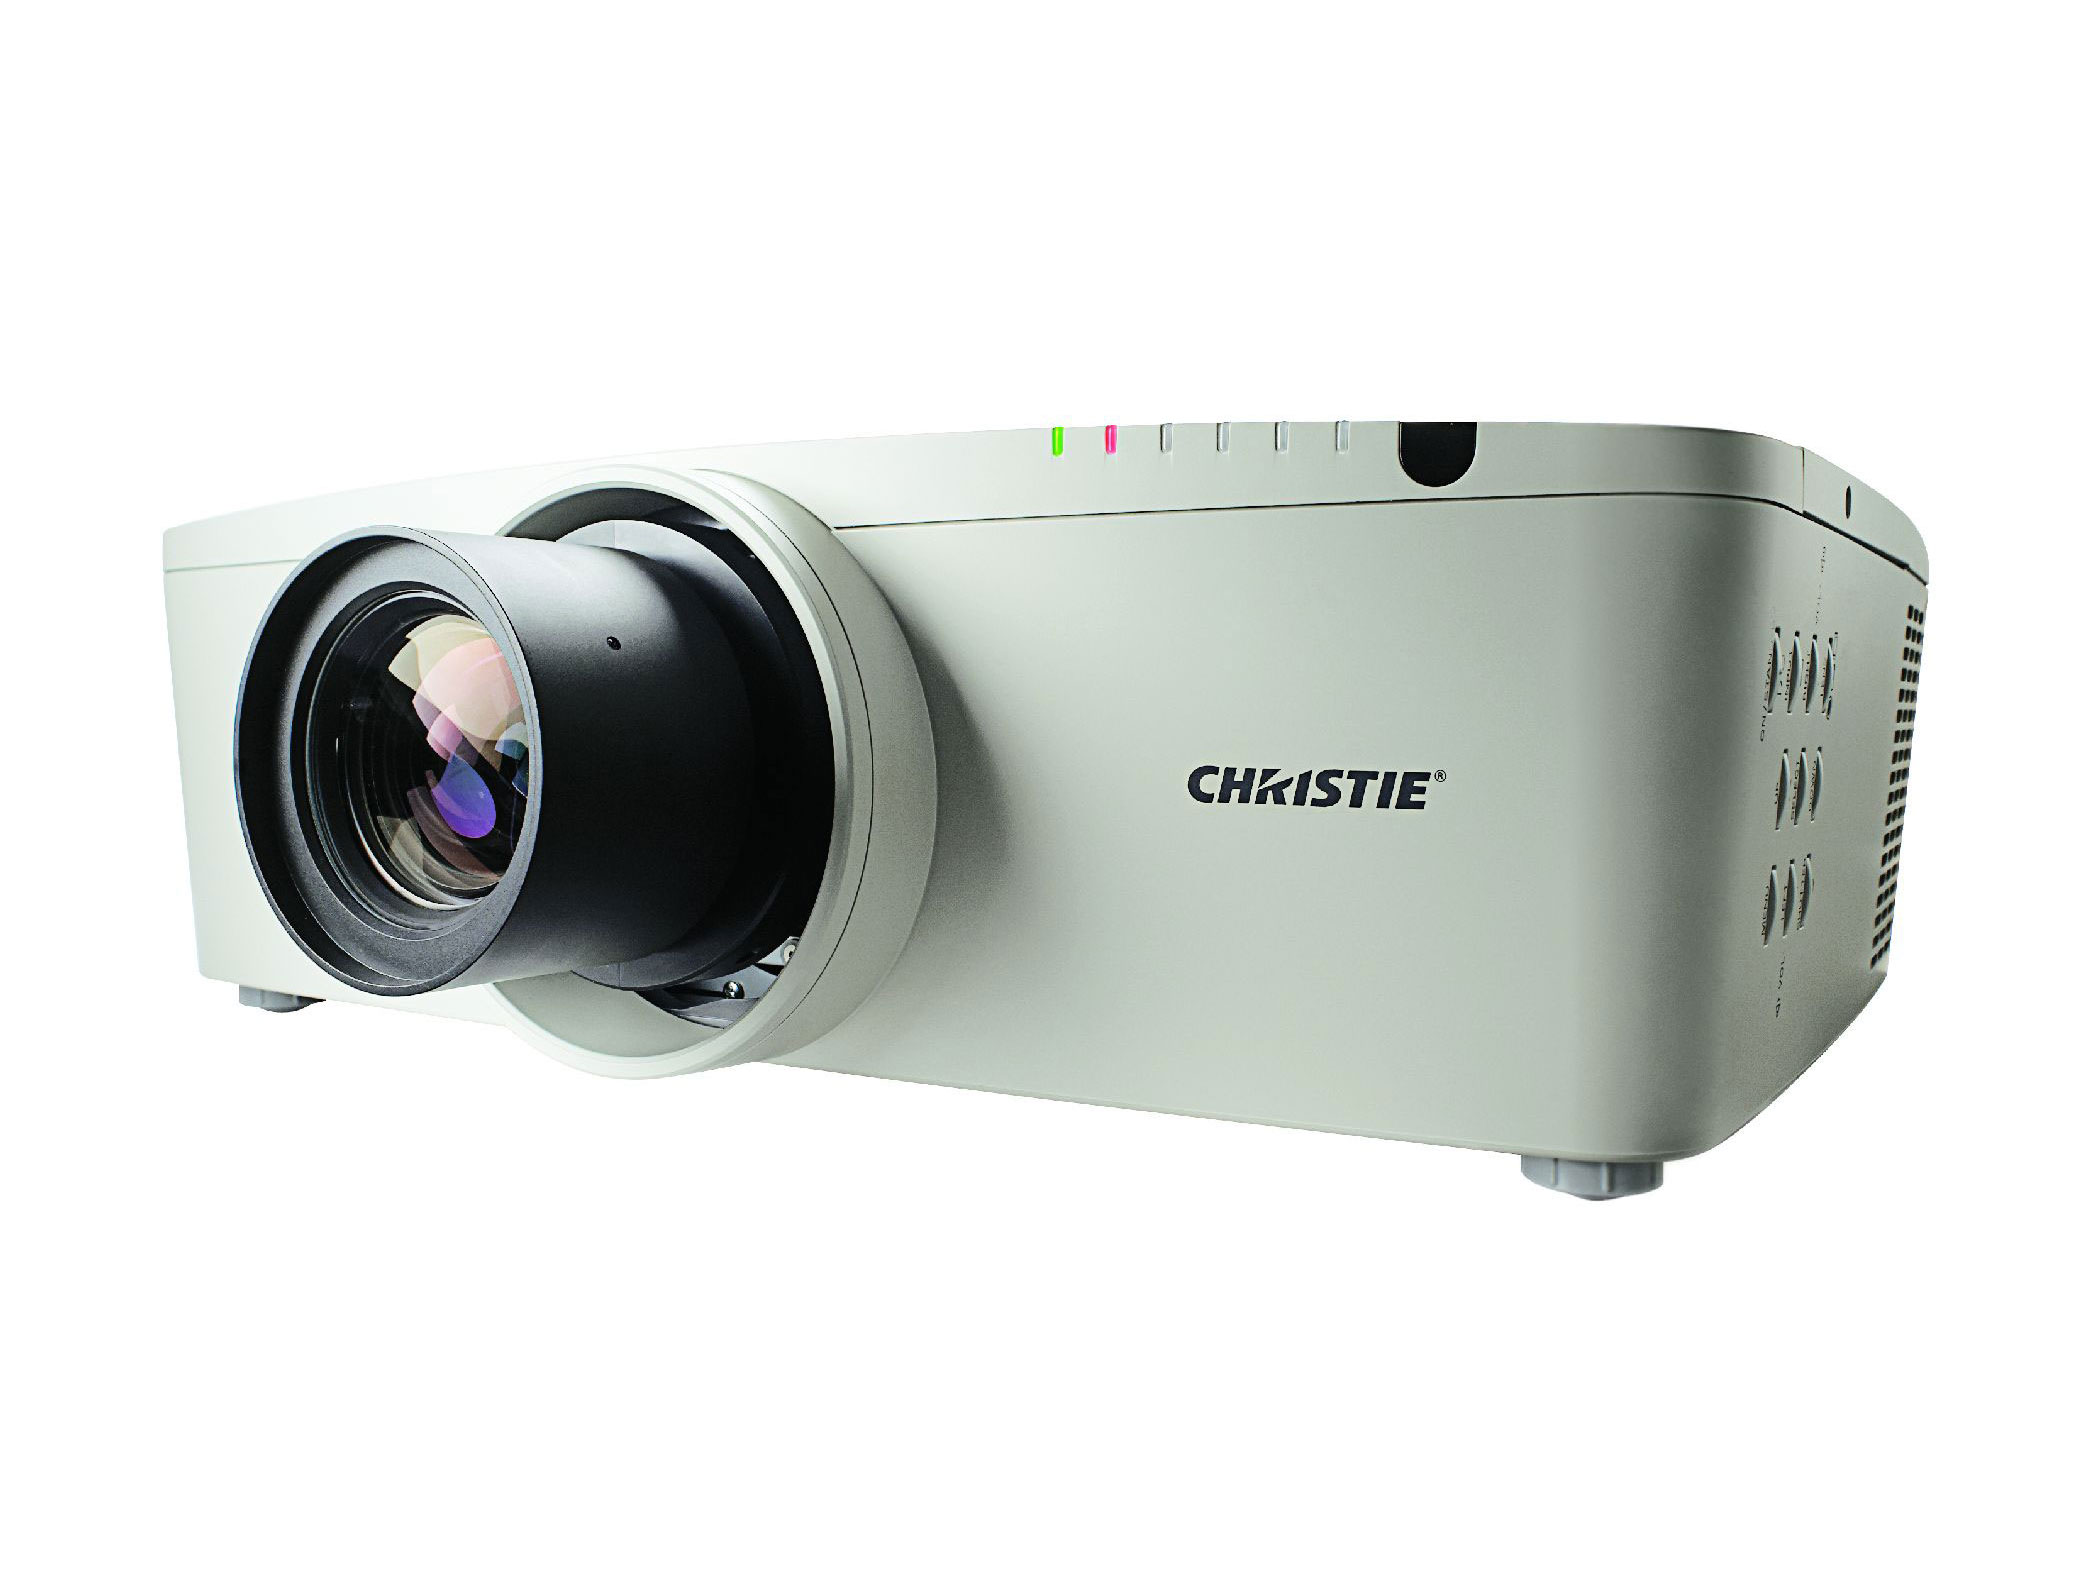 /globalassets/.catalog/products/images/christie-lw555/gallery/christie-lw555-lcd-digital-projector-image1.jpg